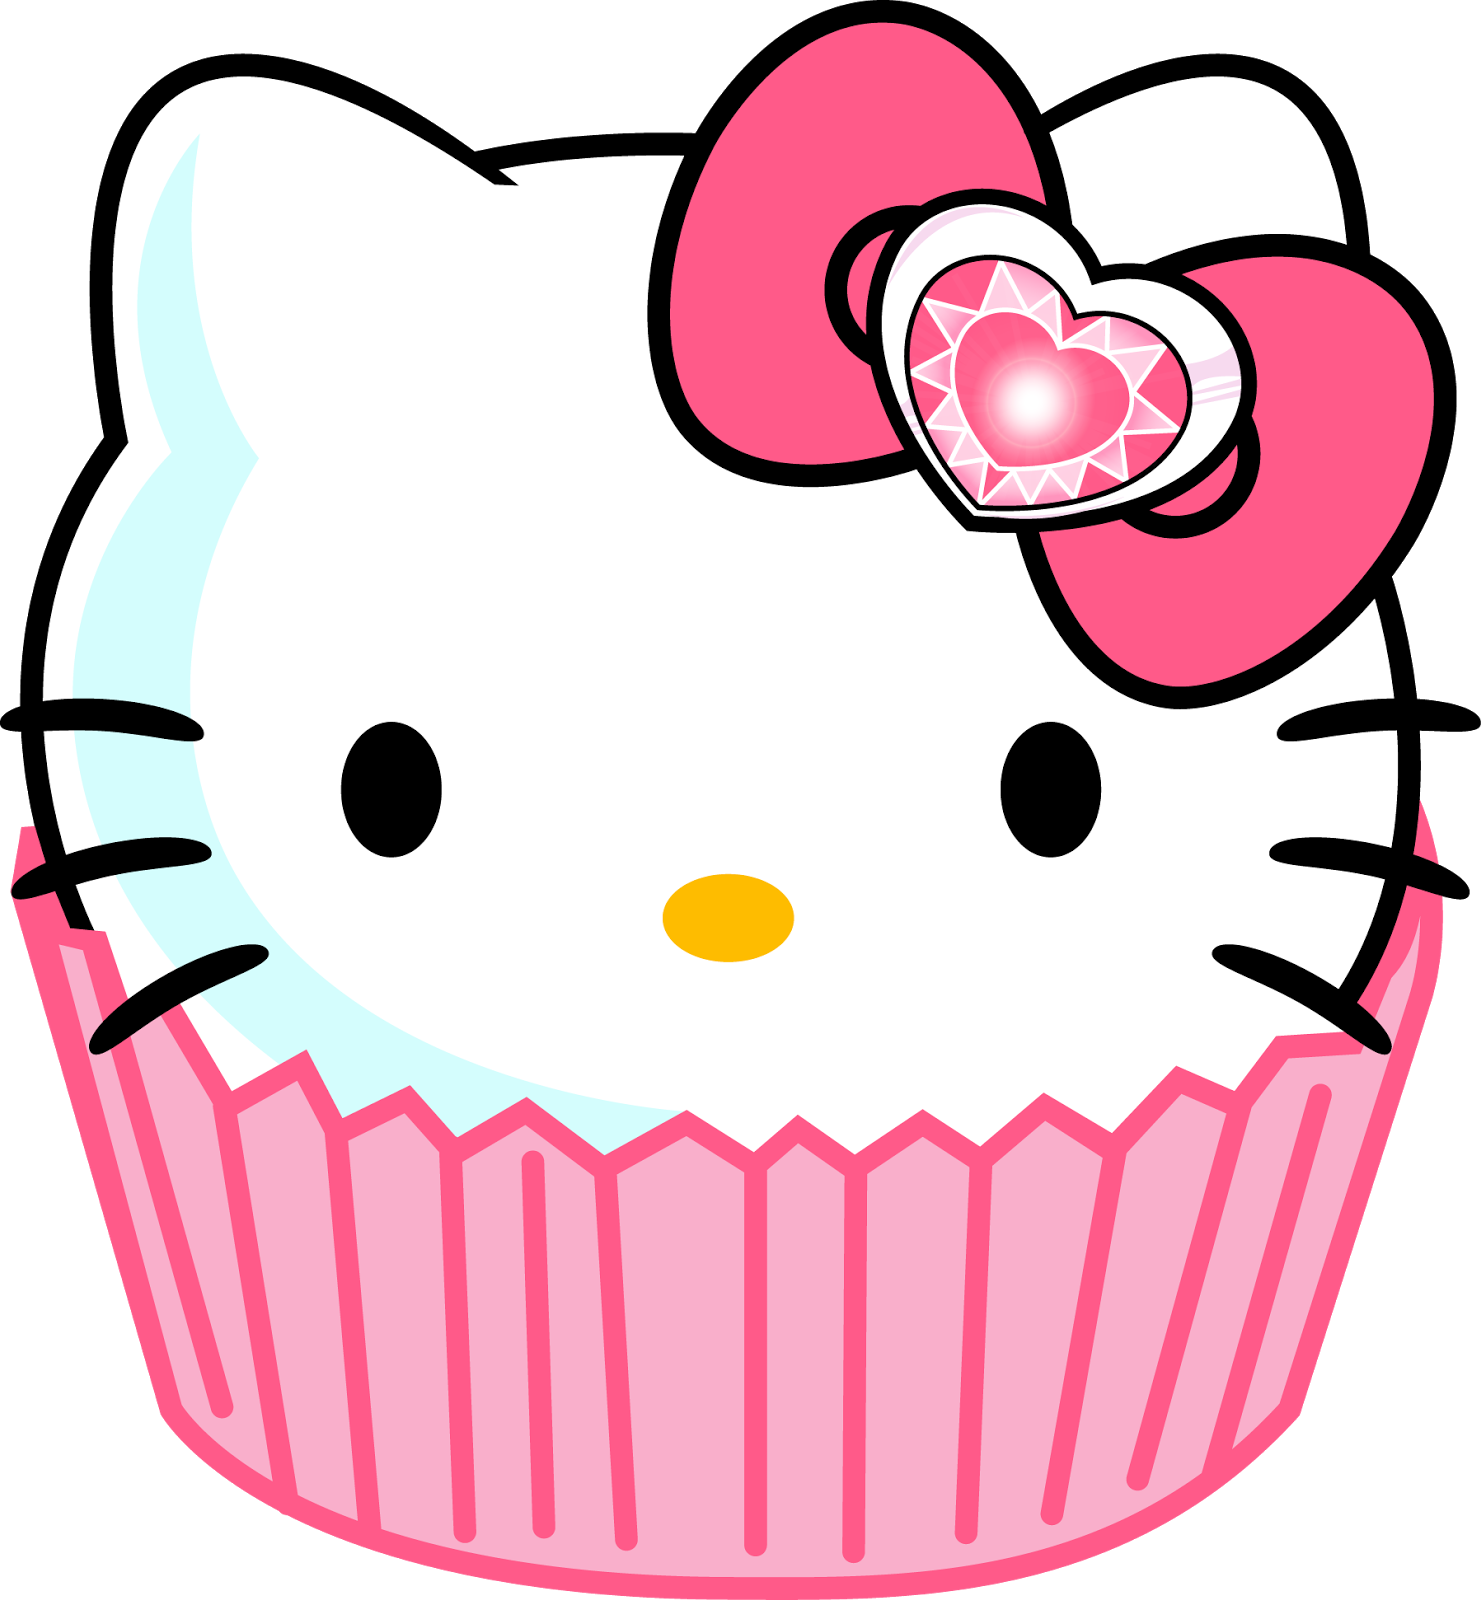 ImagesList com Hello Kitty Images, part 4